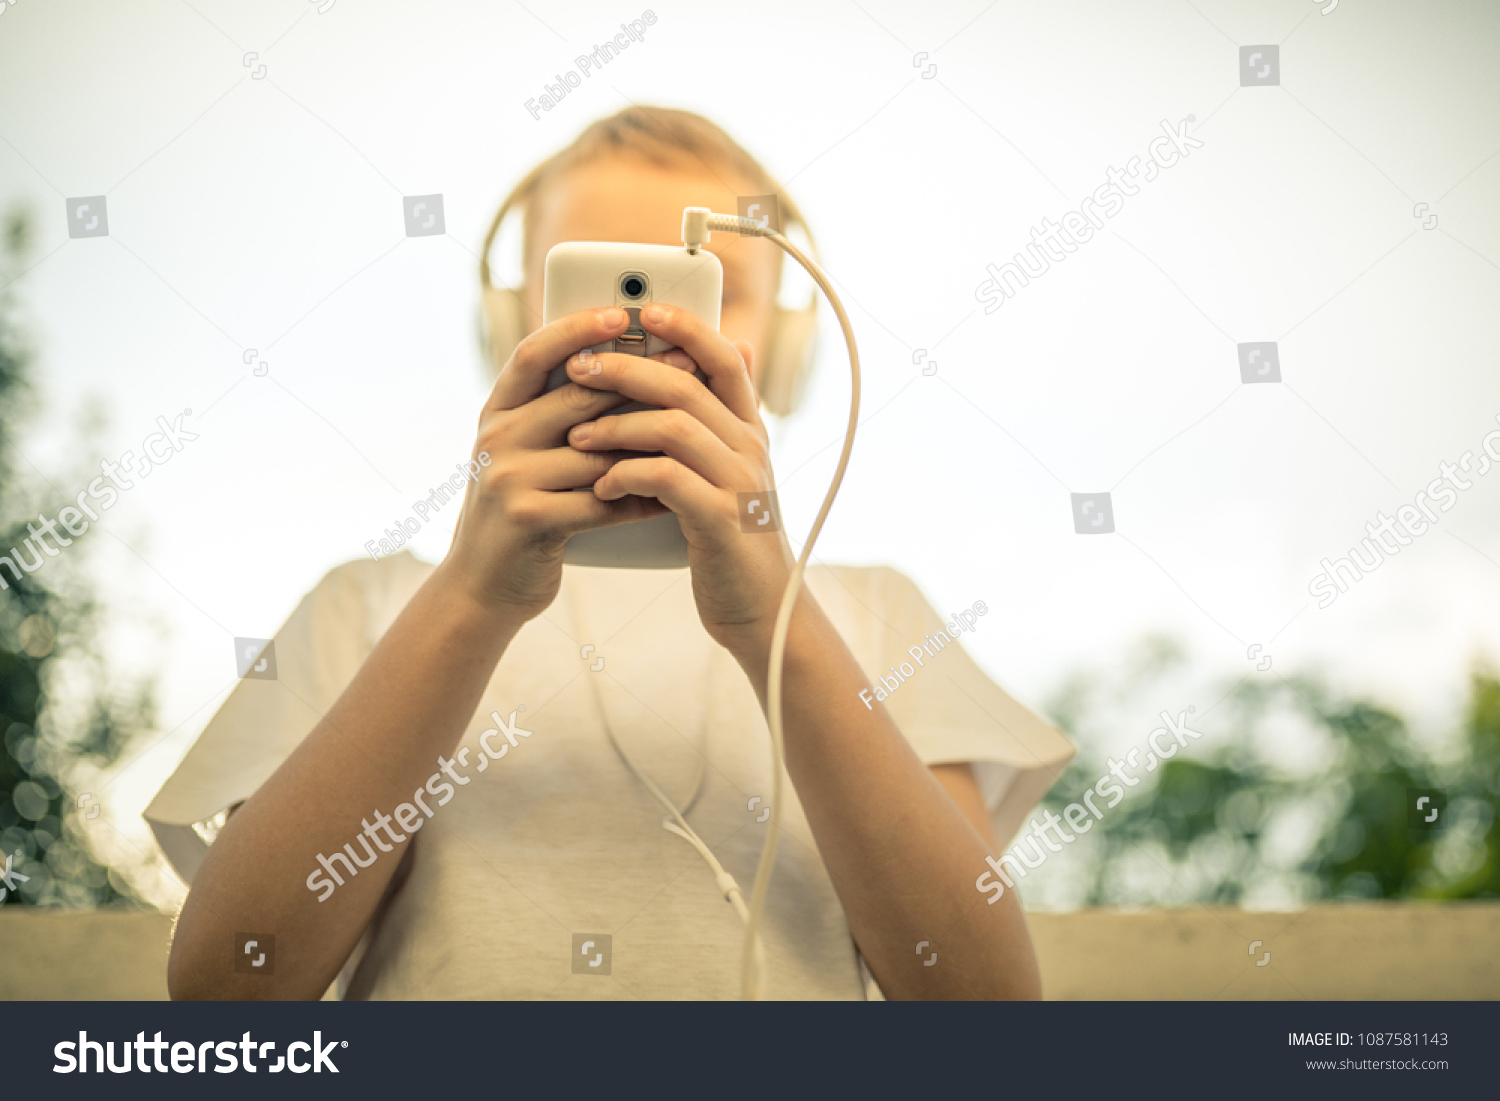 Young boy alone listening music with smartphone pre teen alone play with phone in hand